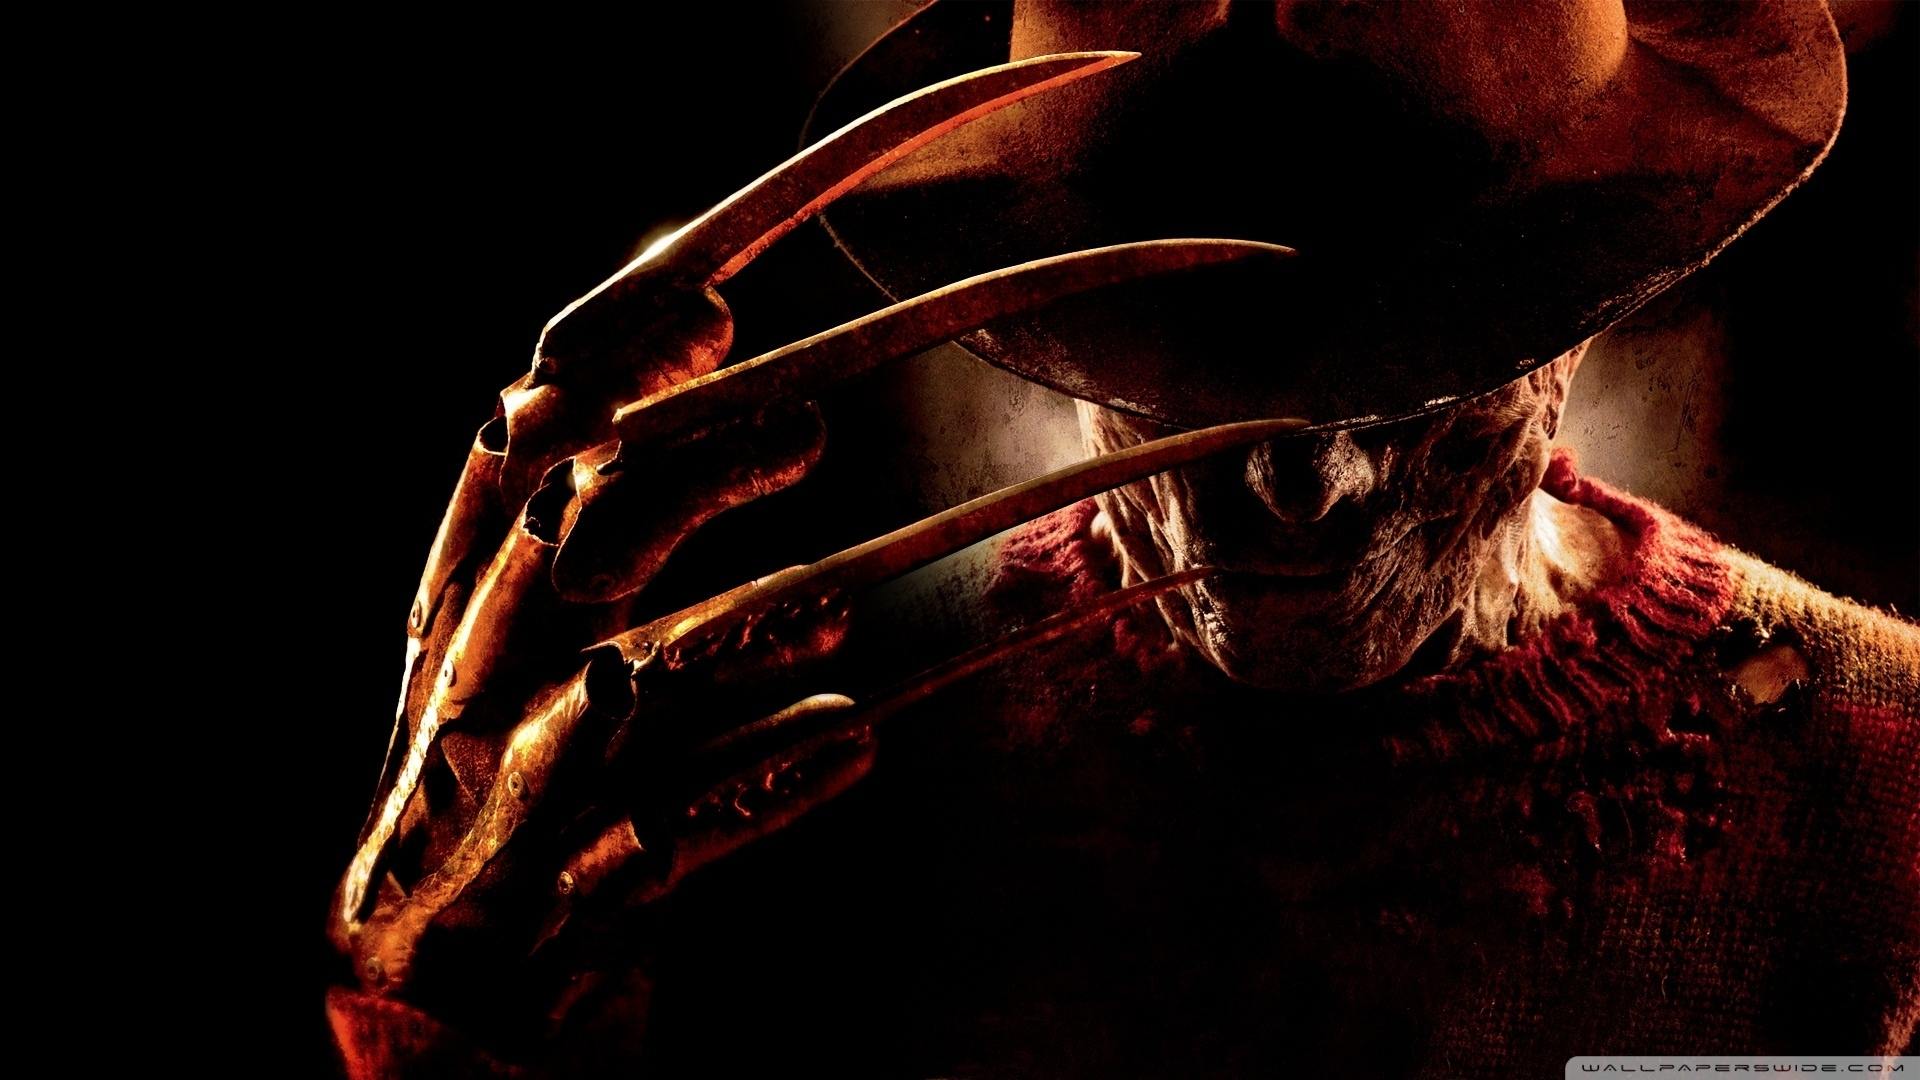 nightmare on elm street - freddy ❤ 4k hd desktop wallpaper for 4k